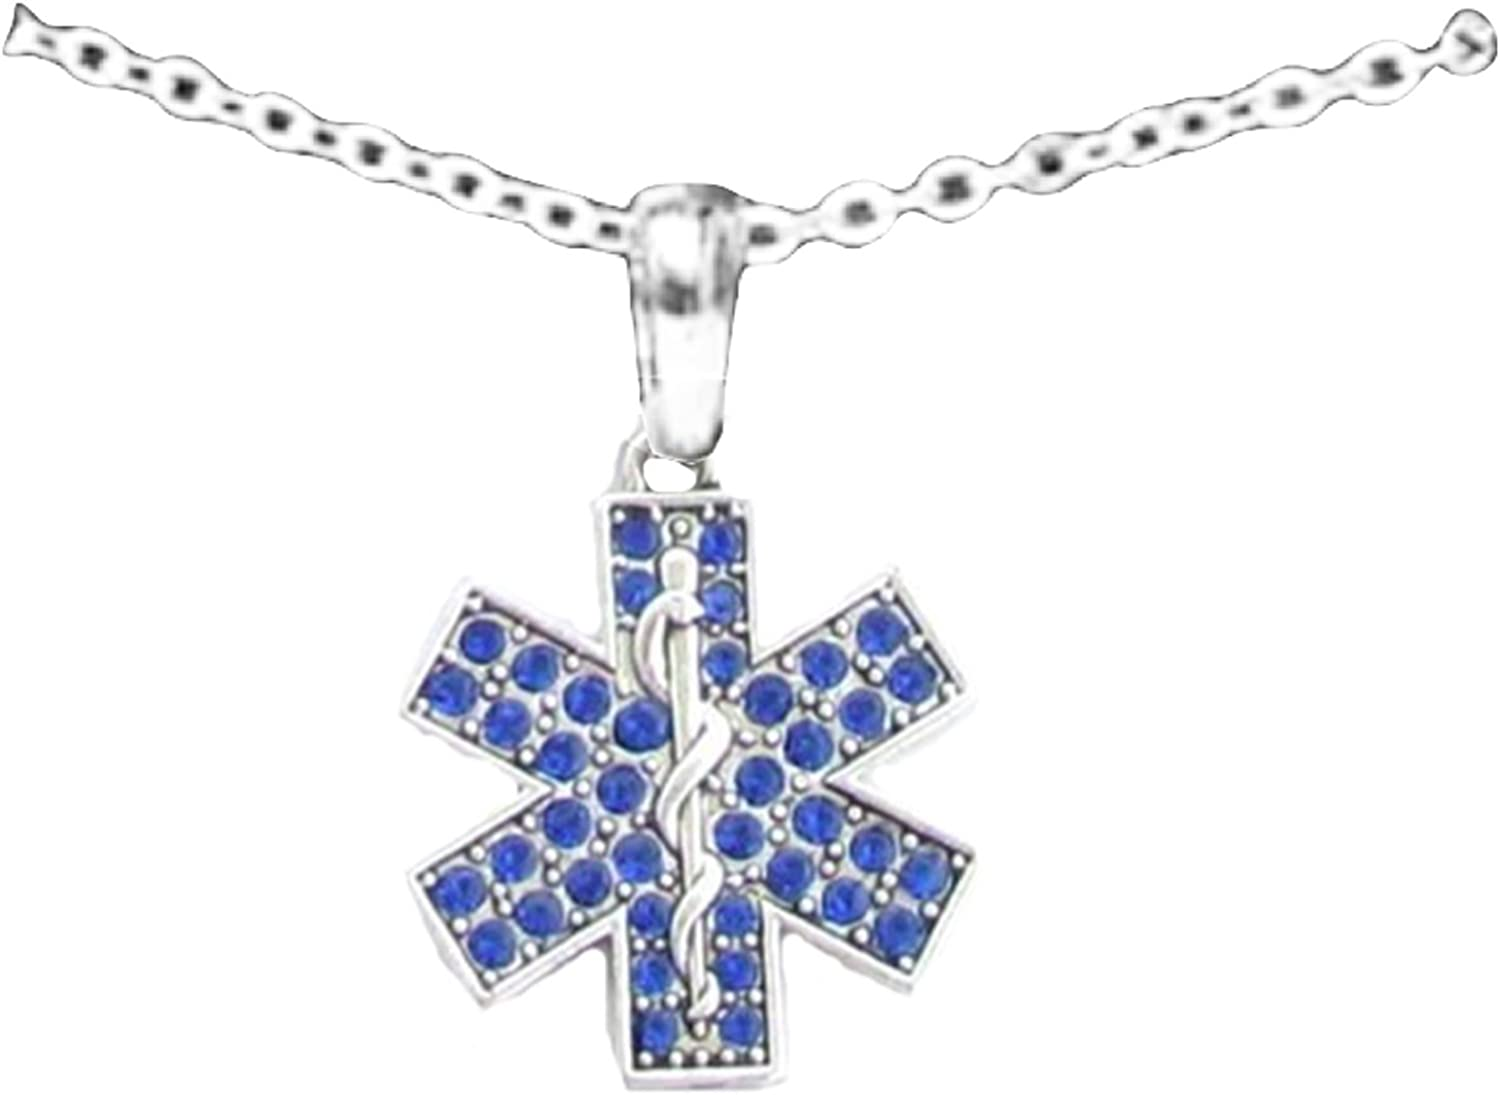 EMS Medical Symbol Charm Jewelry 925 Sterling Silver EMT Paramedic Necklace